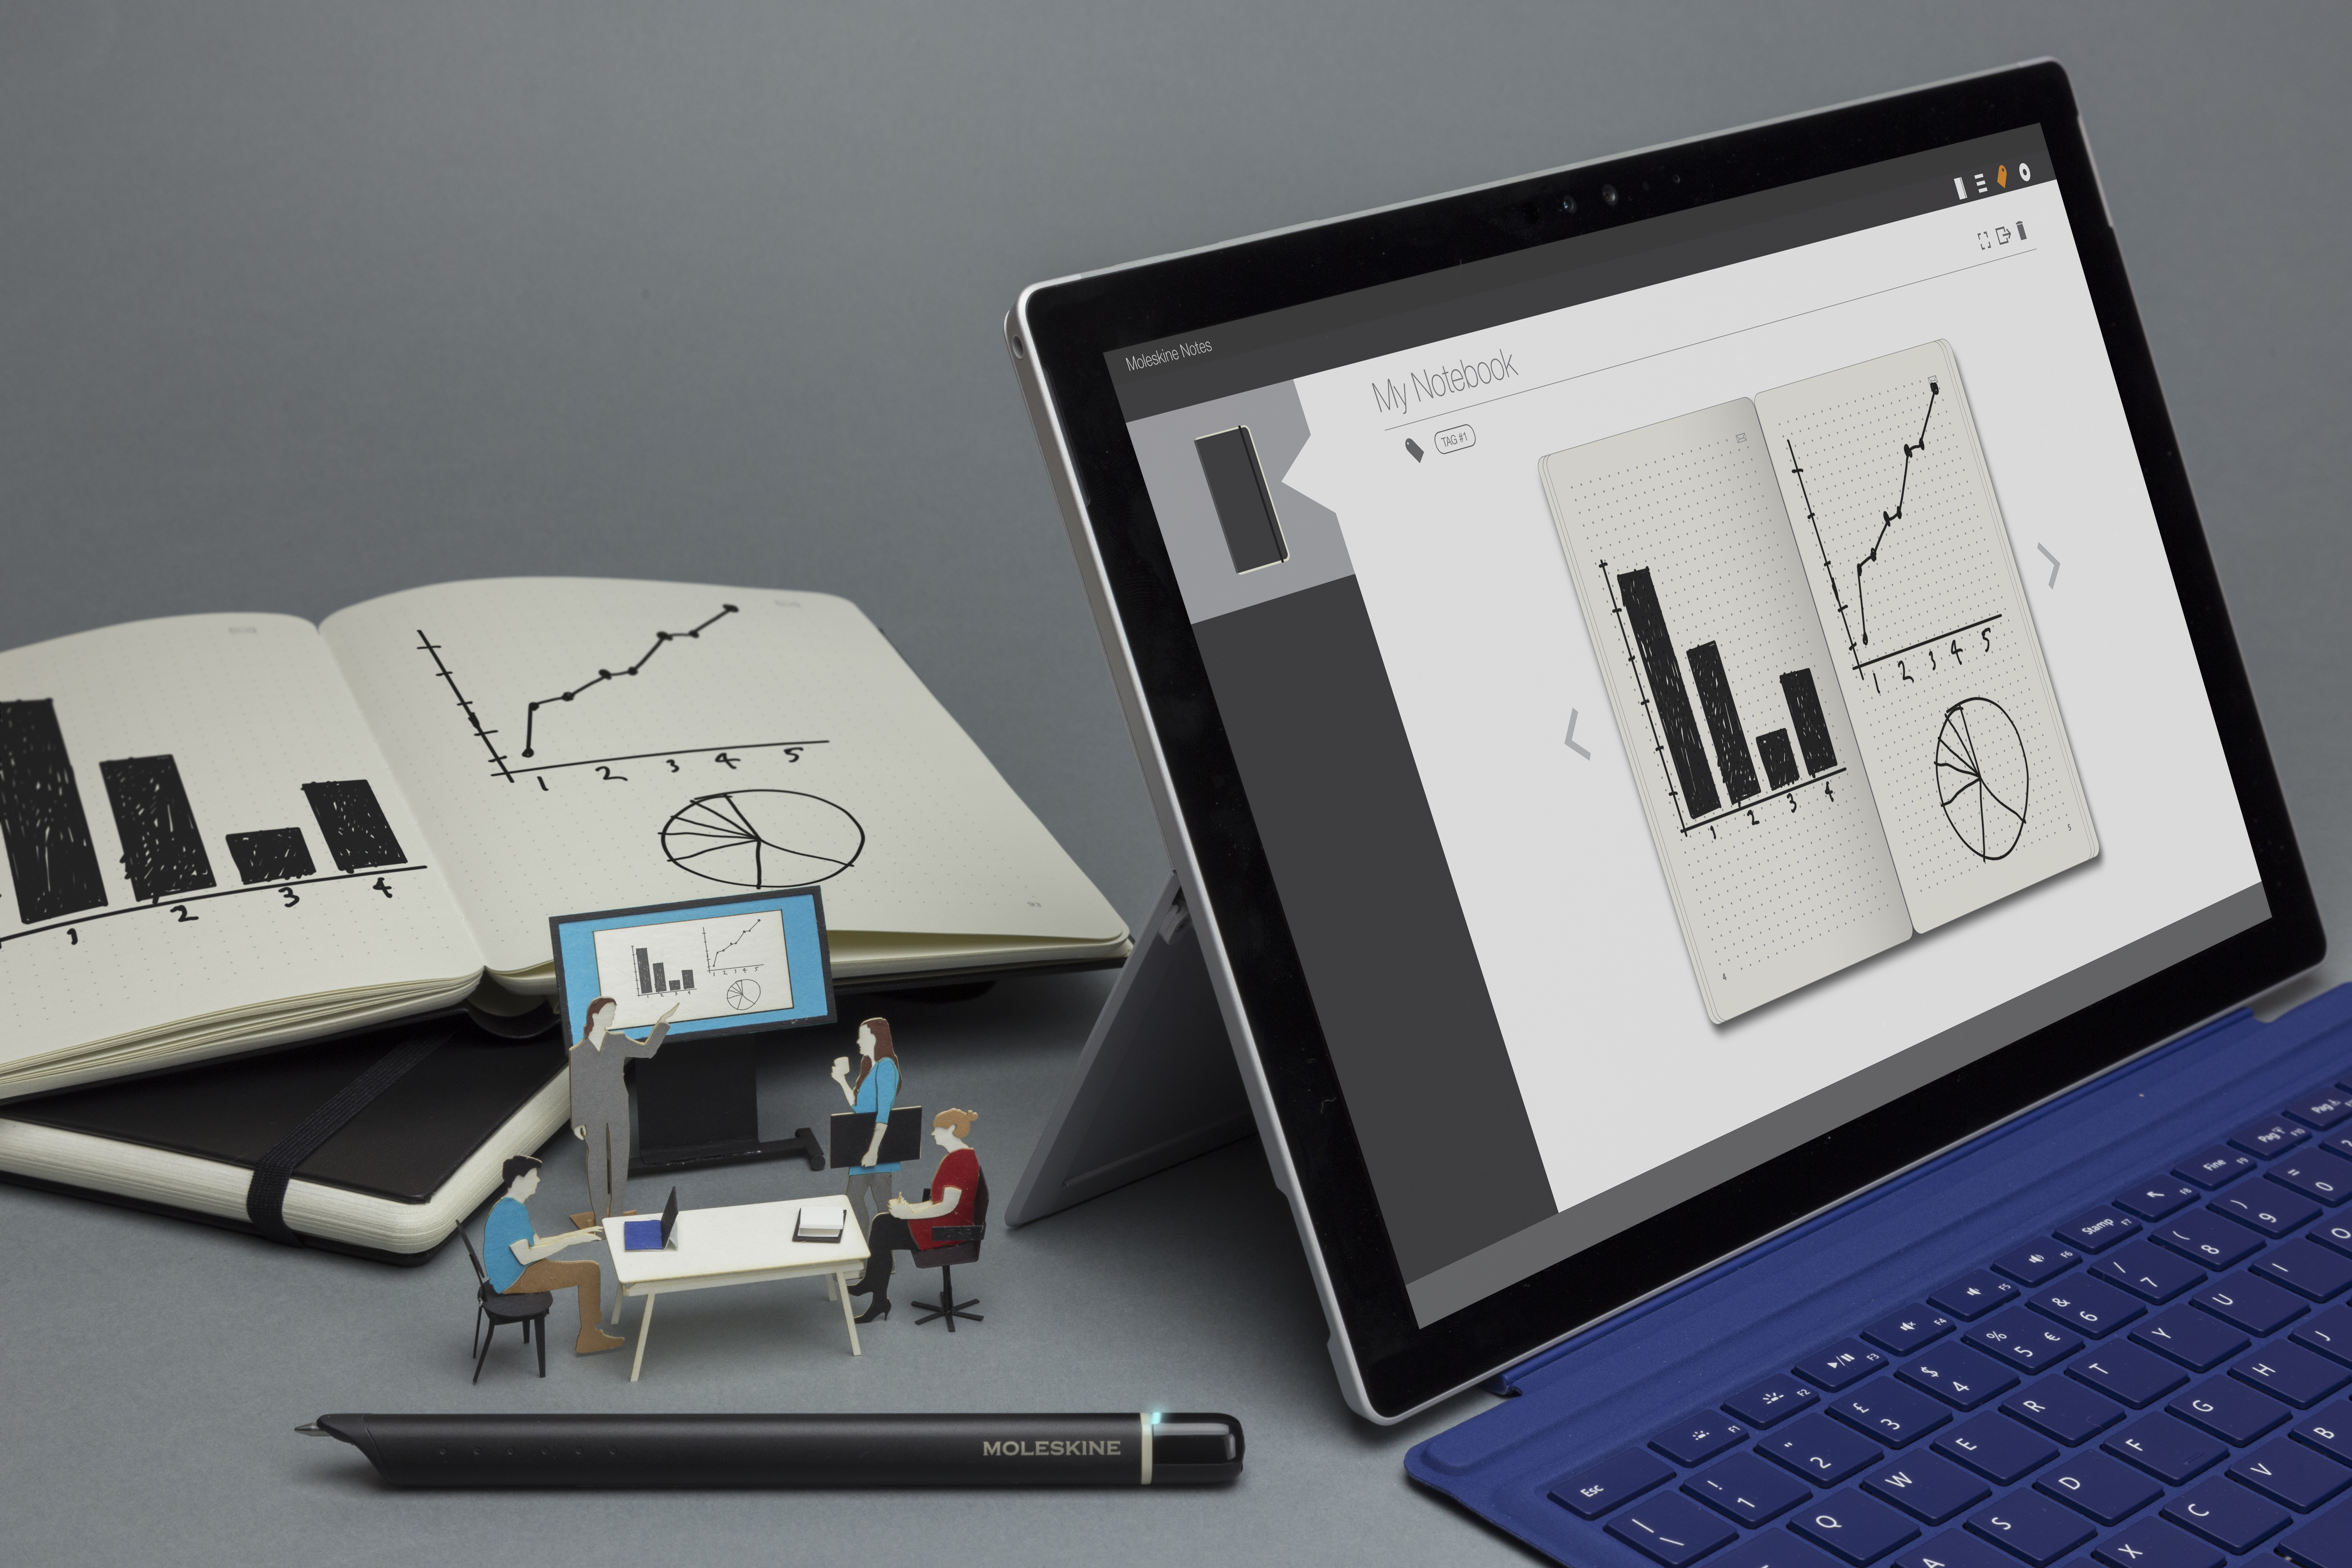 Replacement Windows Cost >> Moleskine's Smart Writing Set digitizes your notes for Windows 10 - The Verge